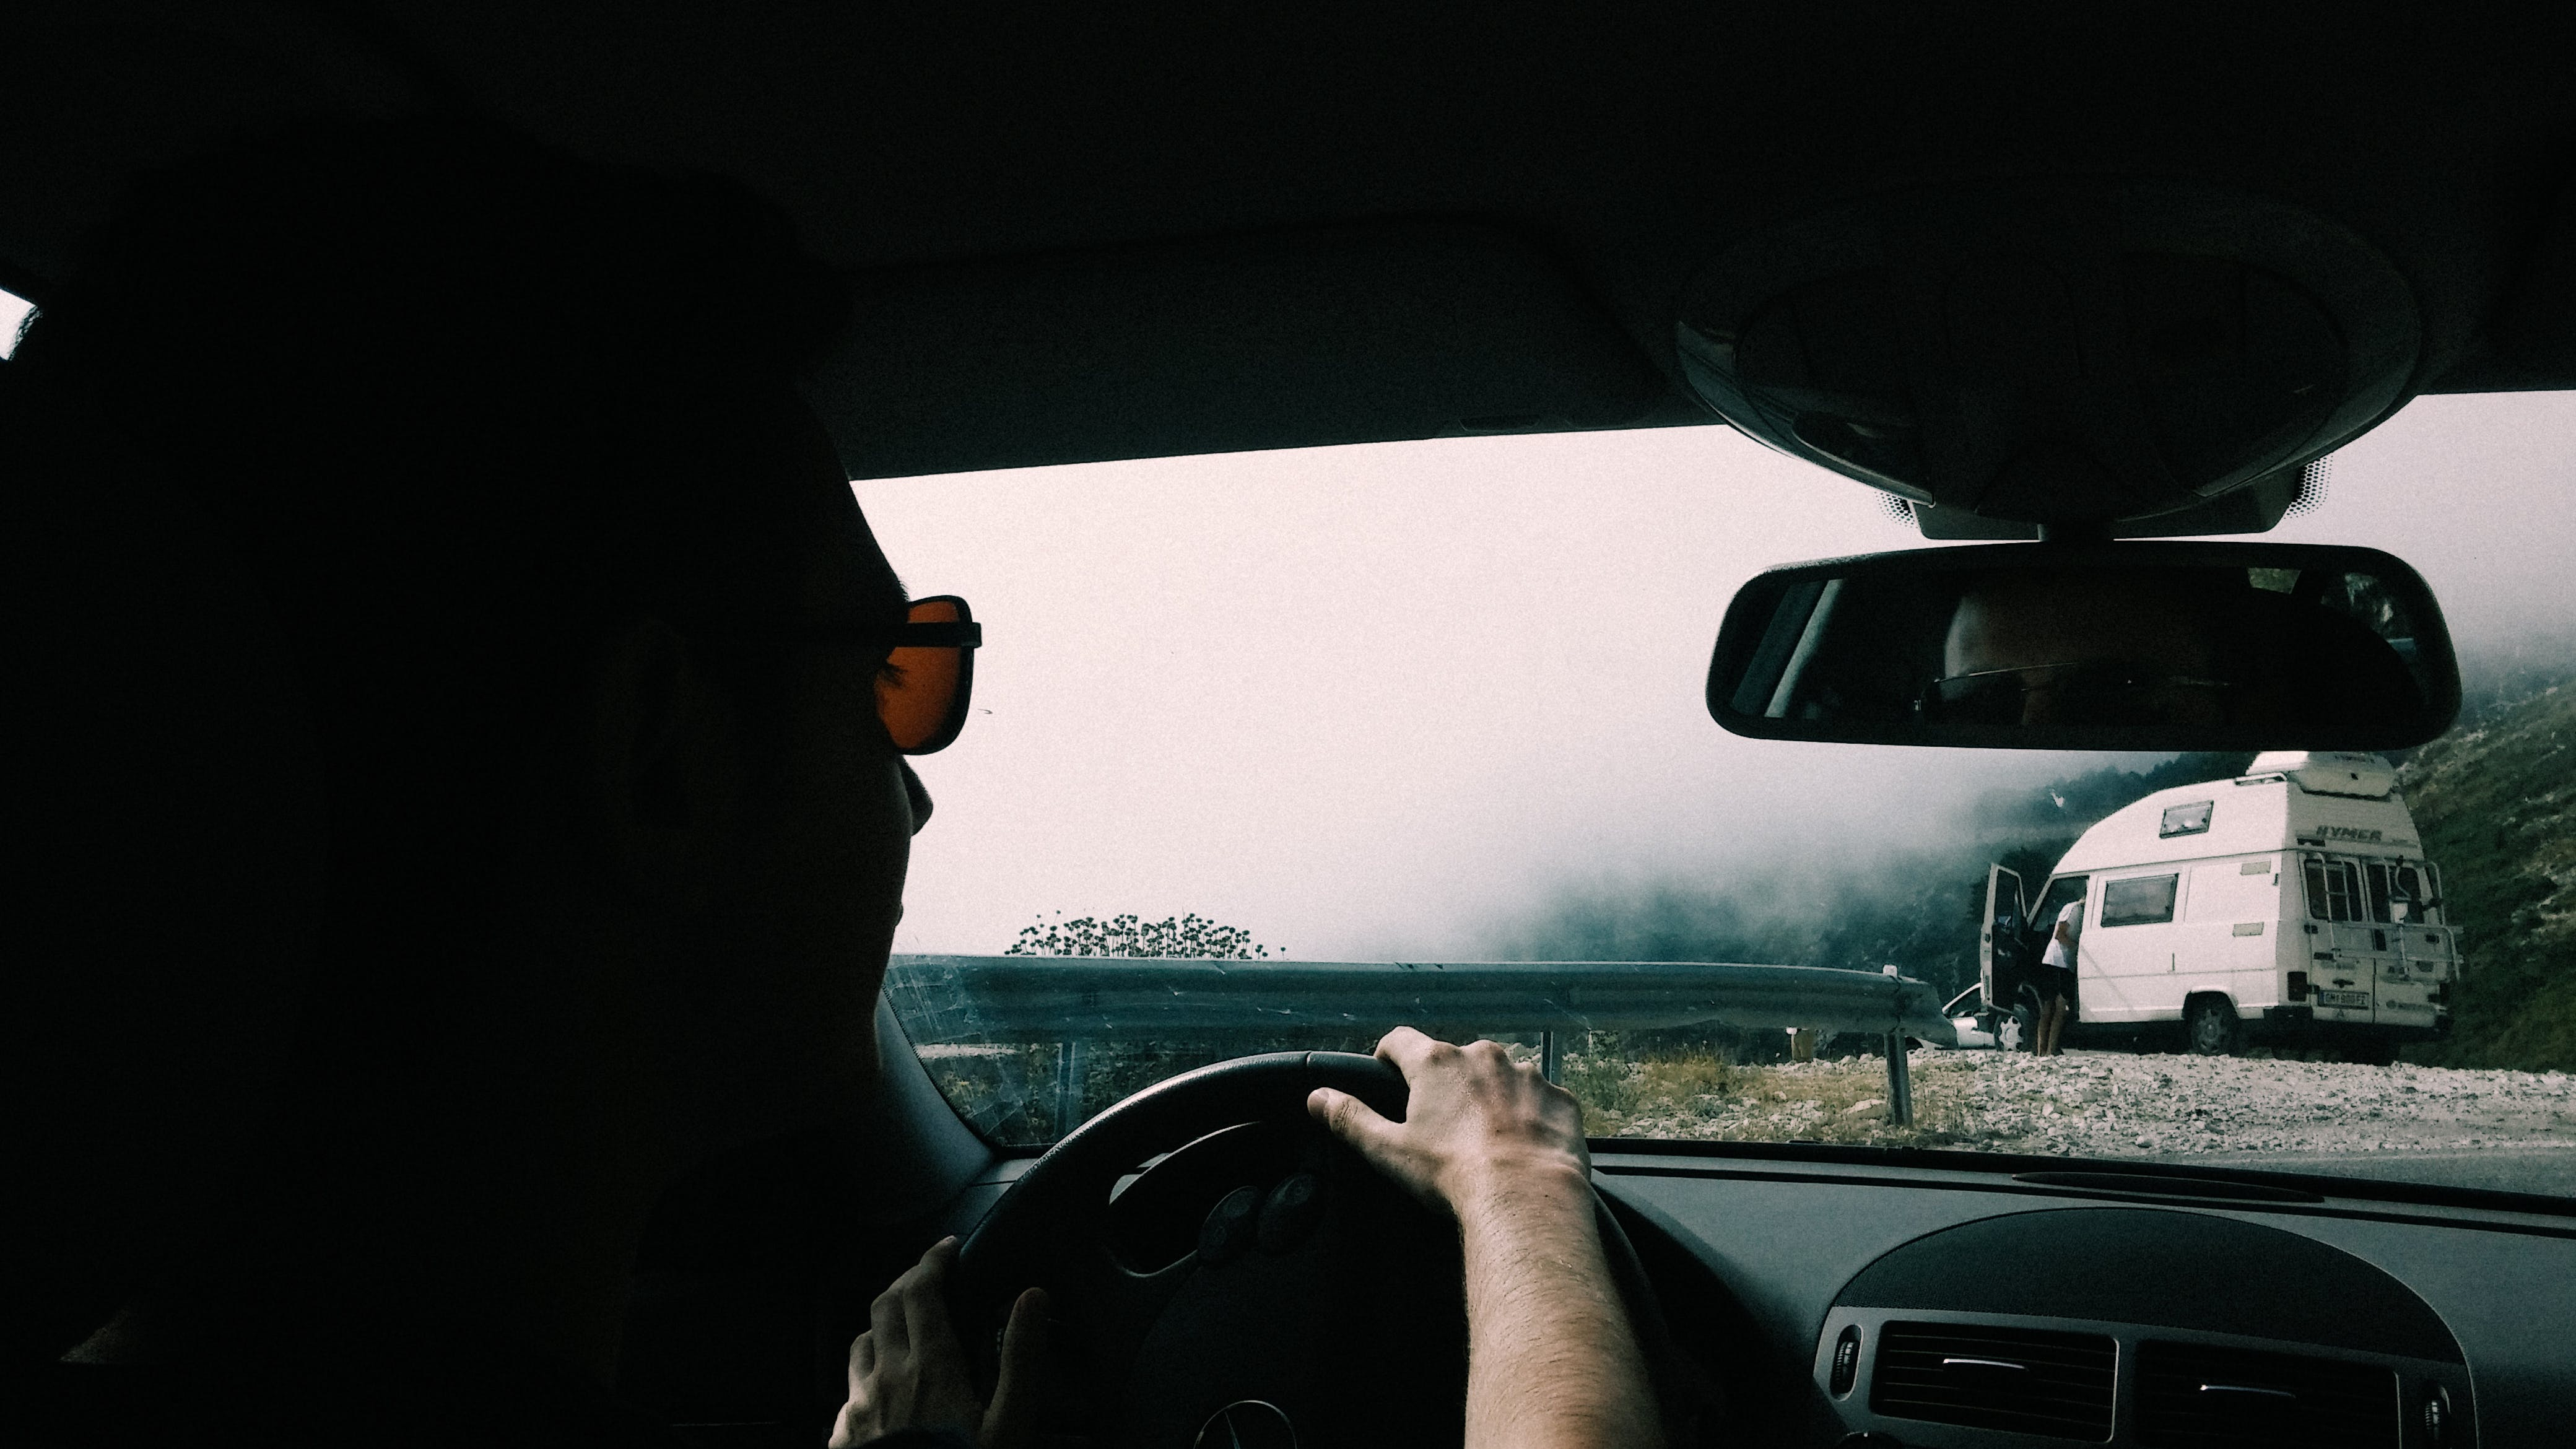 Free stock photo of road, sunglasses, traveling, fog